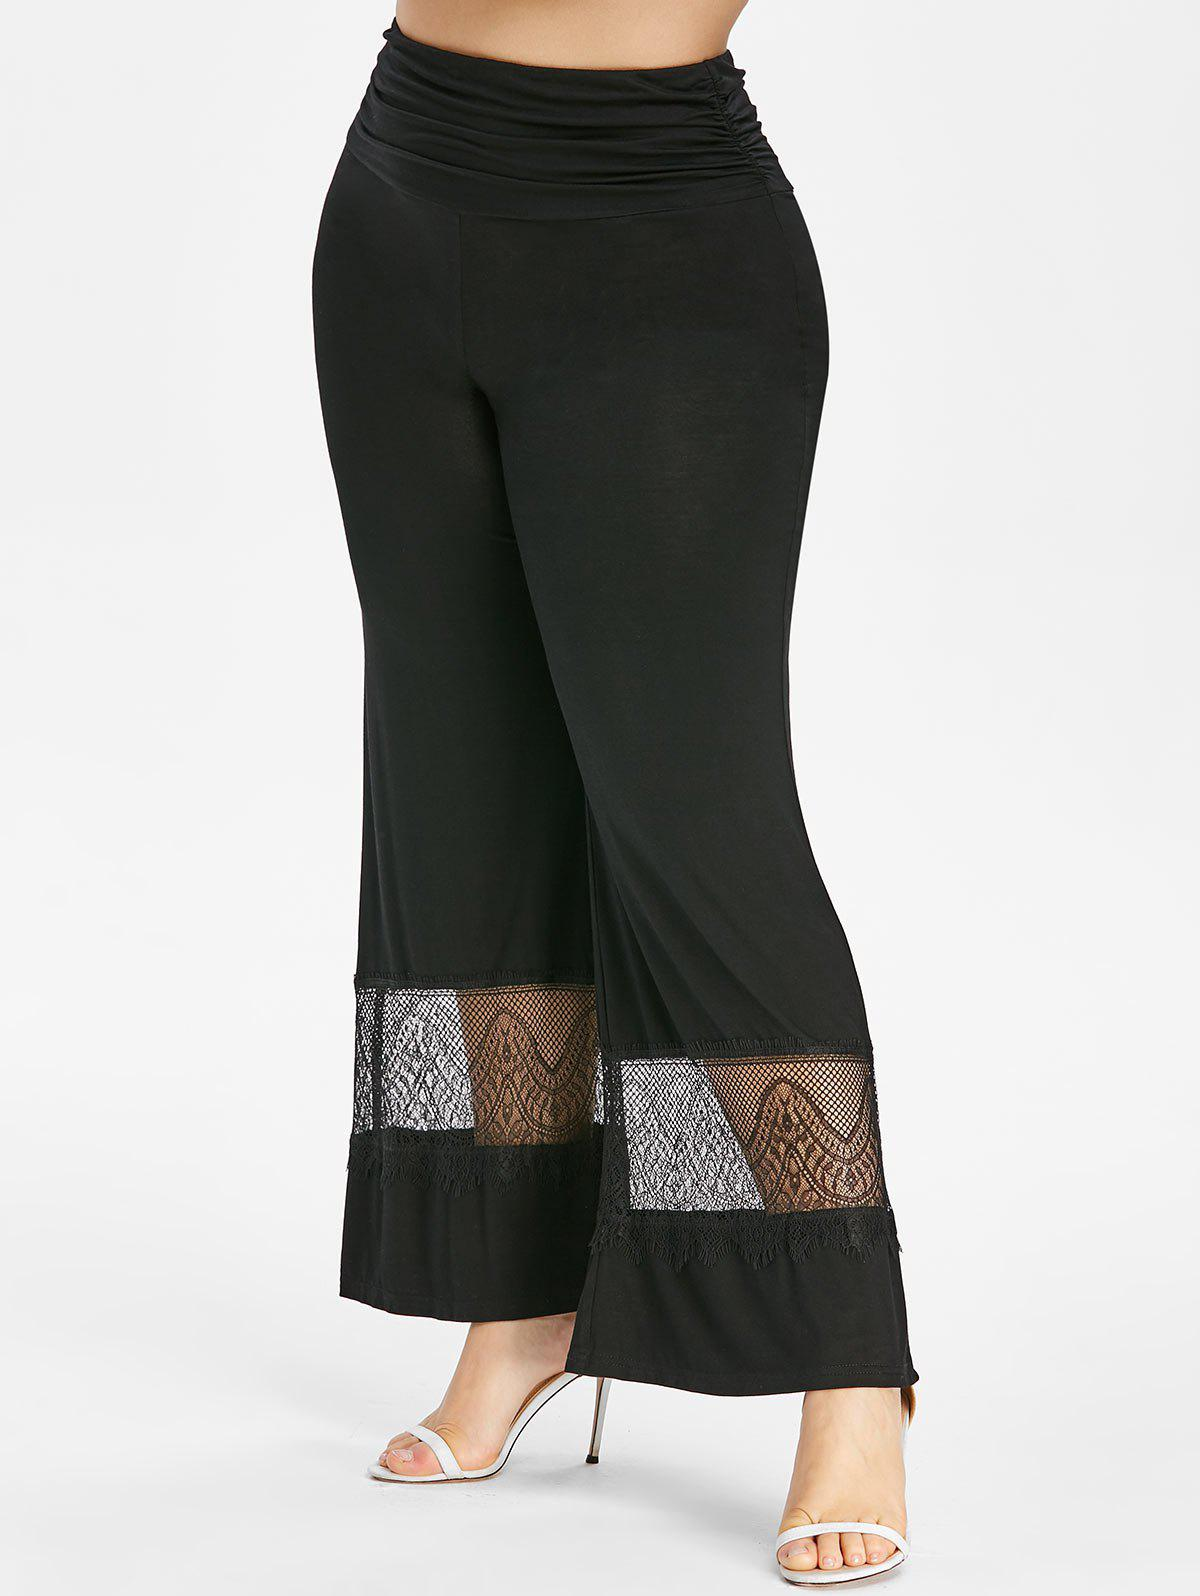 Plus Size High Waisted Lace Insert Wide Leg Pants - BLACK 5X